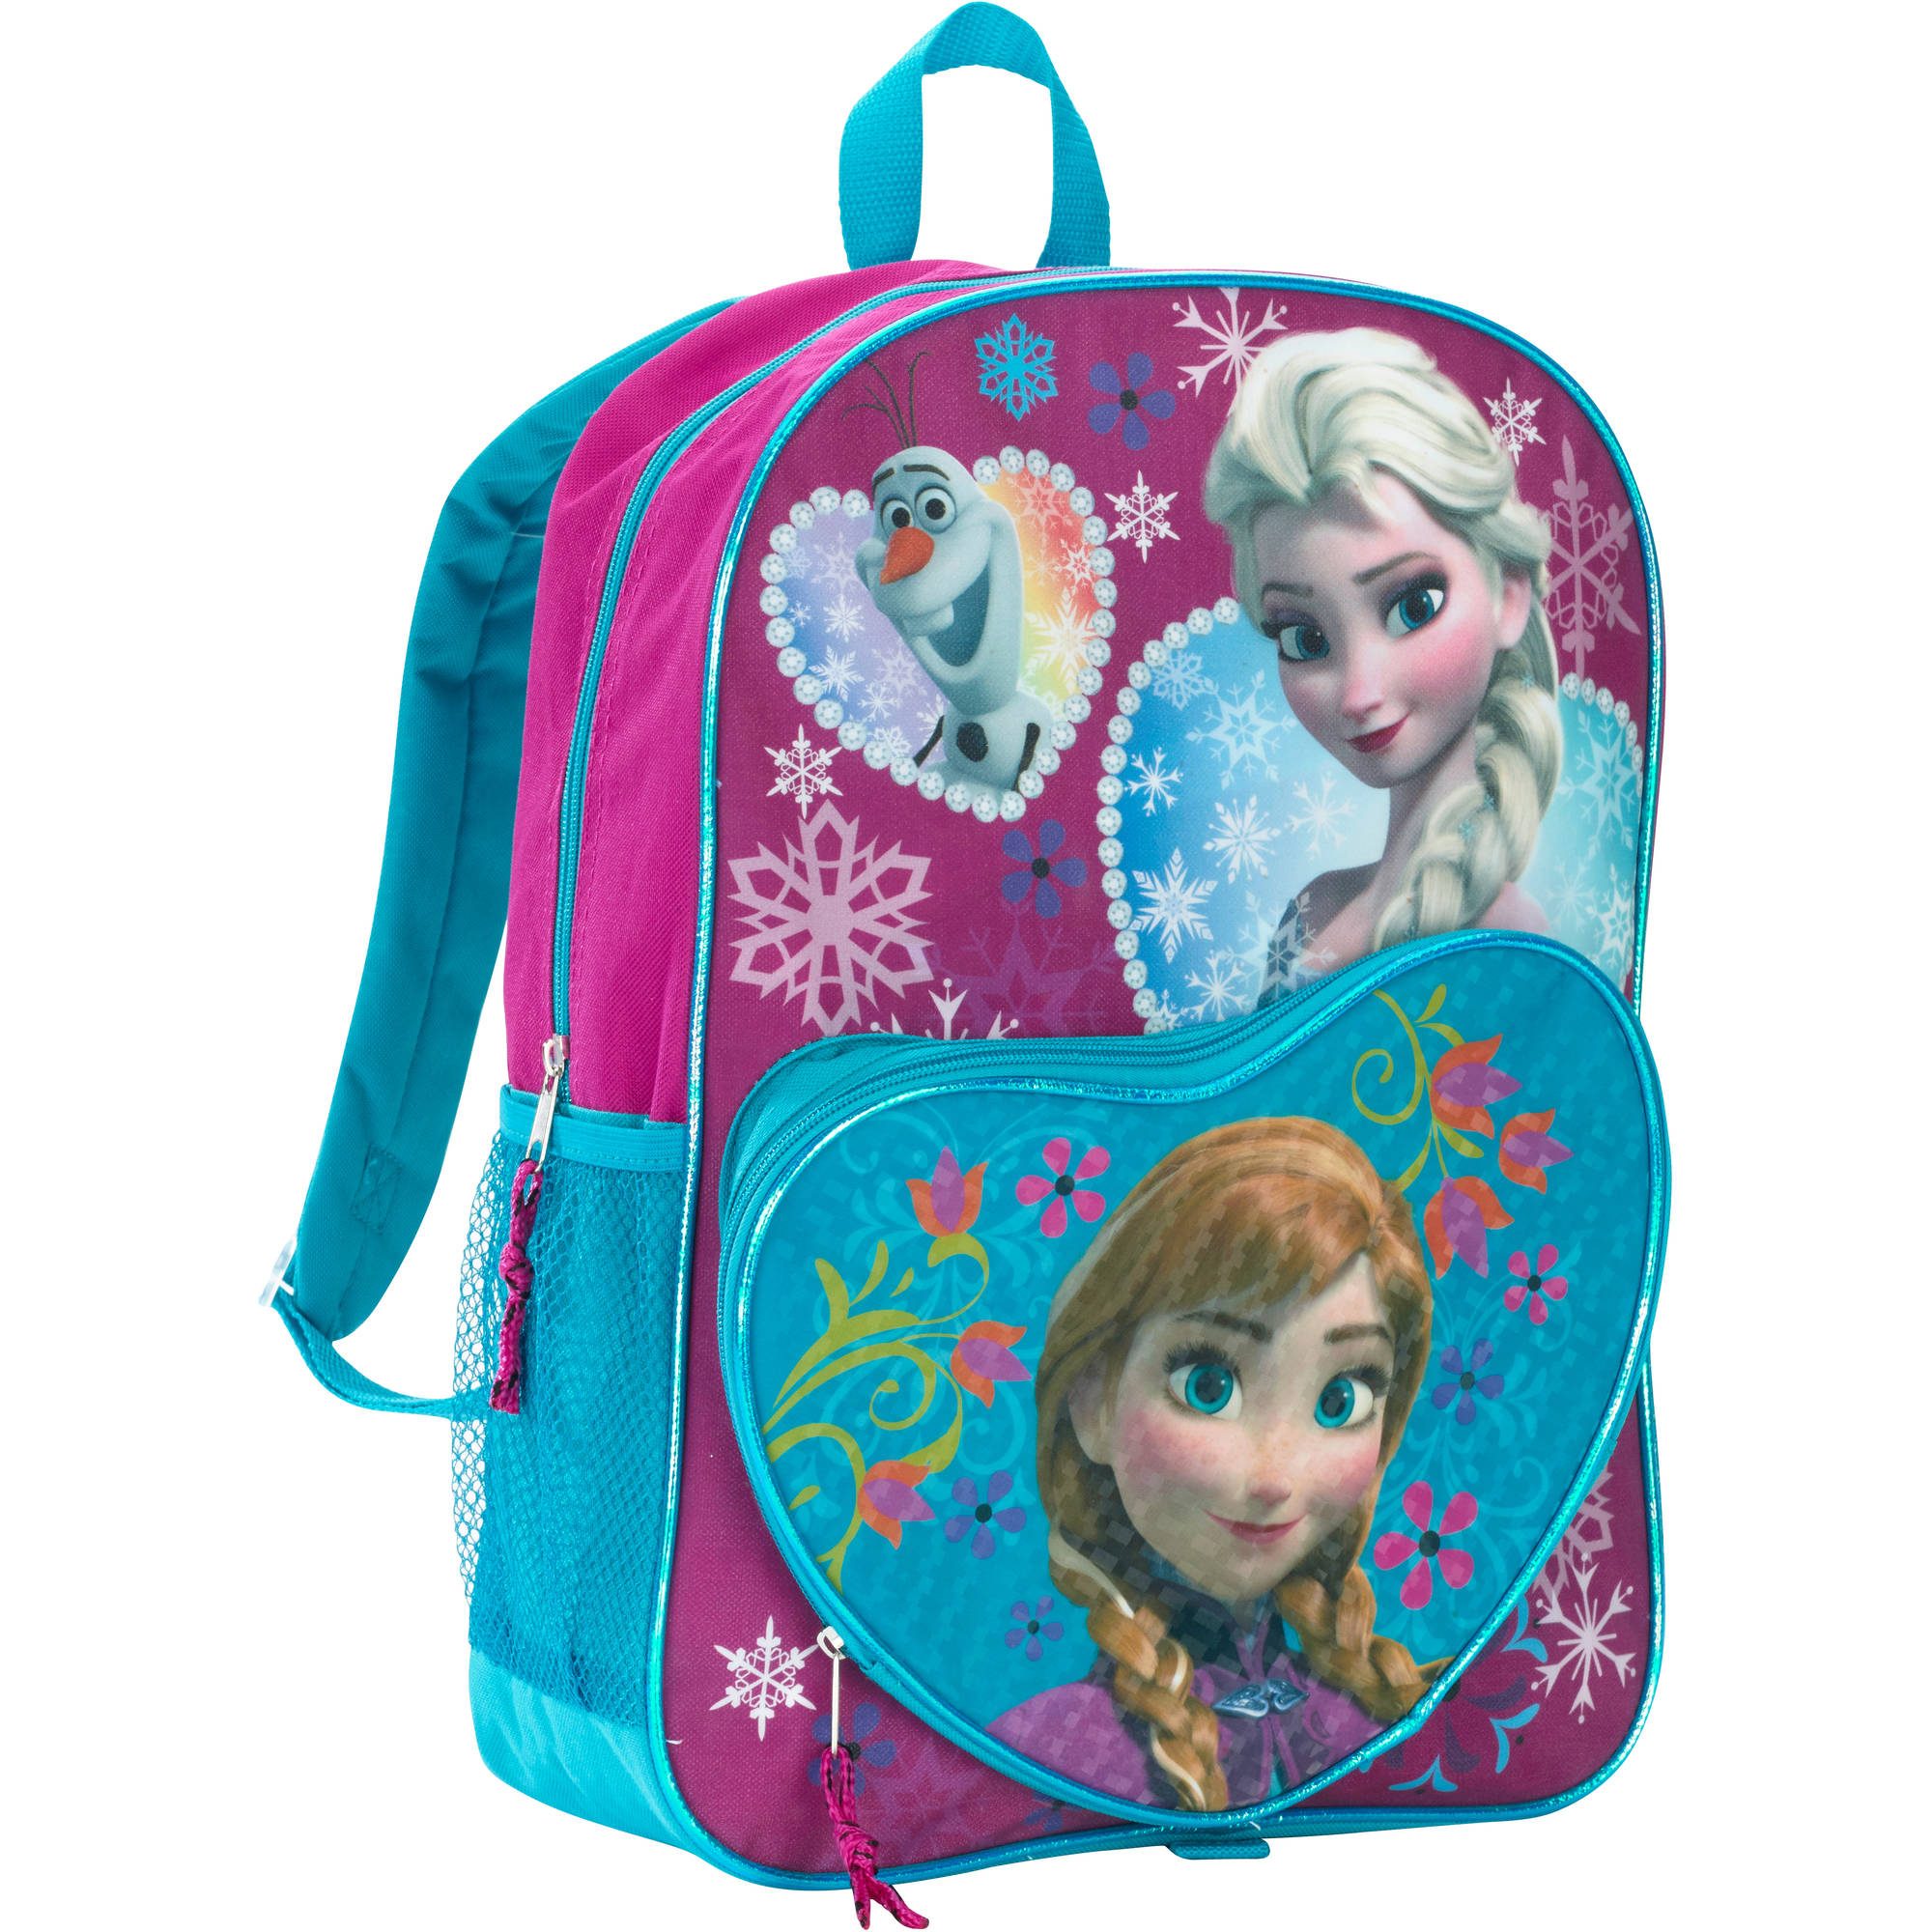 Disney Frozen 16 Inch Deluxe Heart Shaped Pocket Kids Backpack